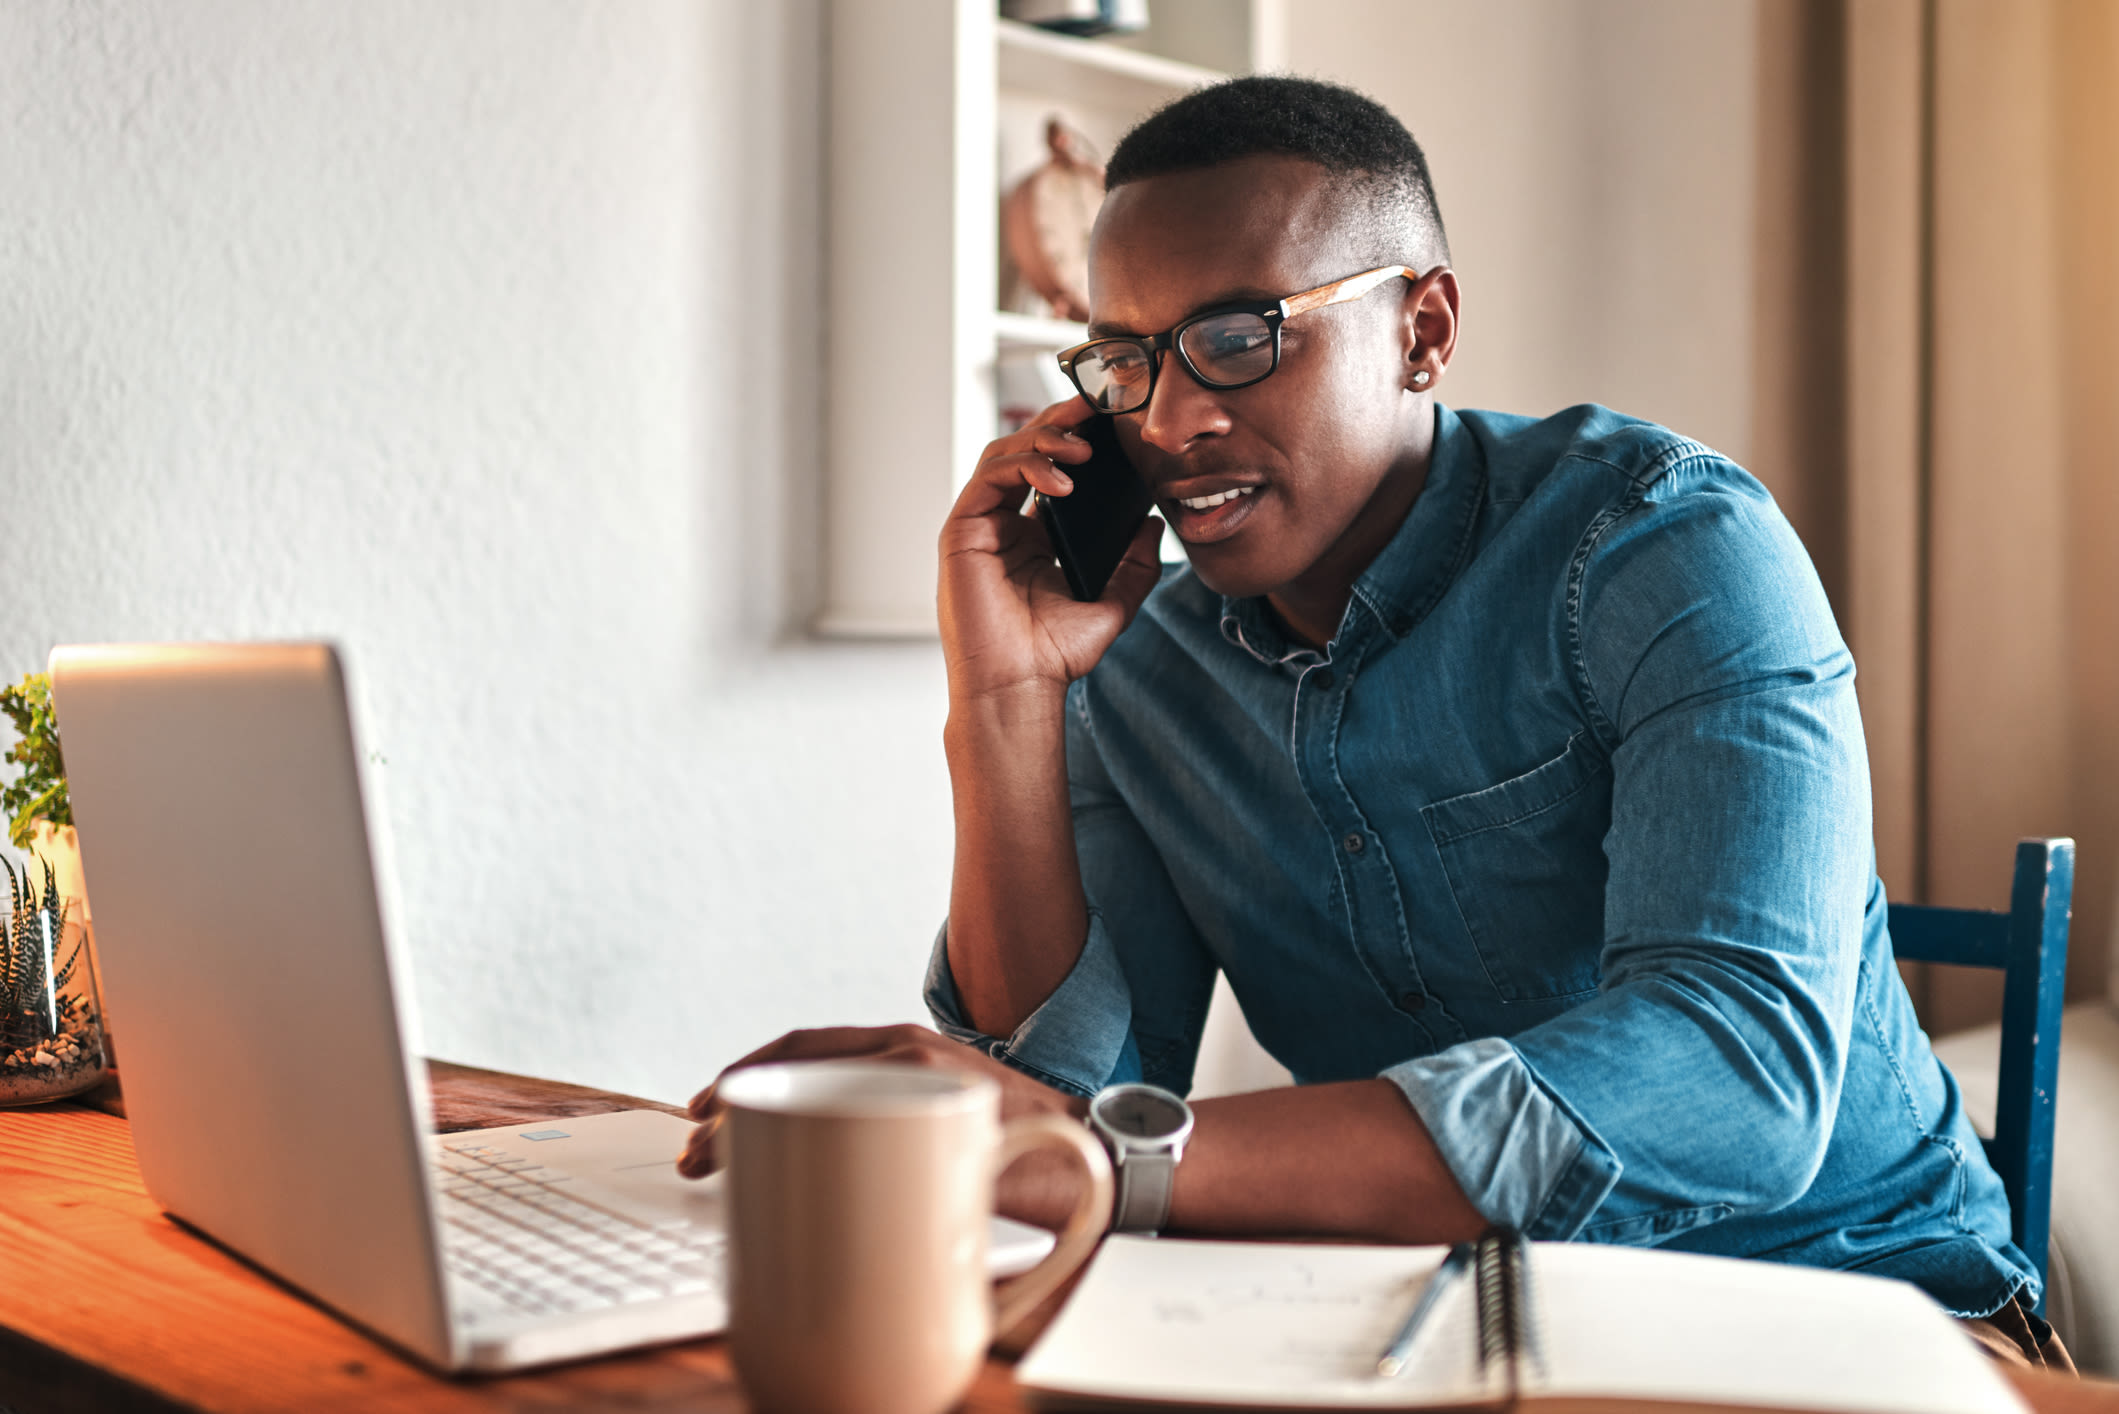 A man working from home, talking on the phone and looking at a laptop